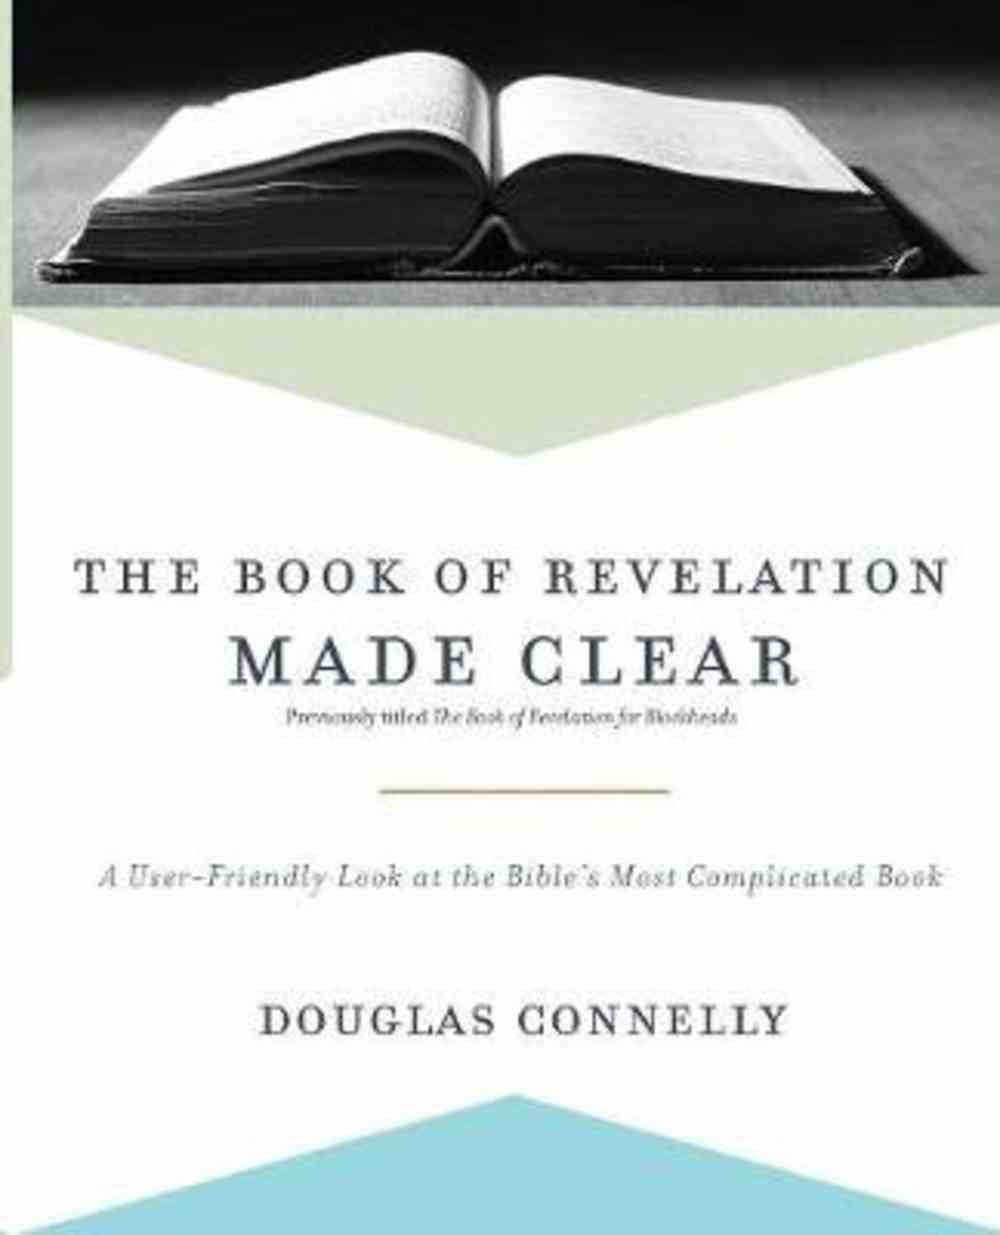 The Book of Revelation Made Clear: A User-Friendly Look At the Bible's Most Complicated Book Paperback